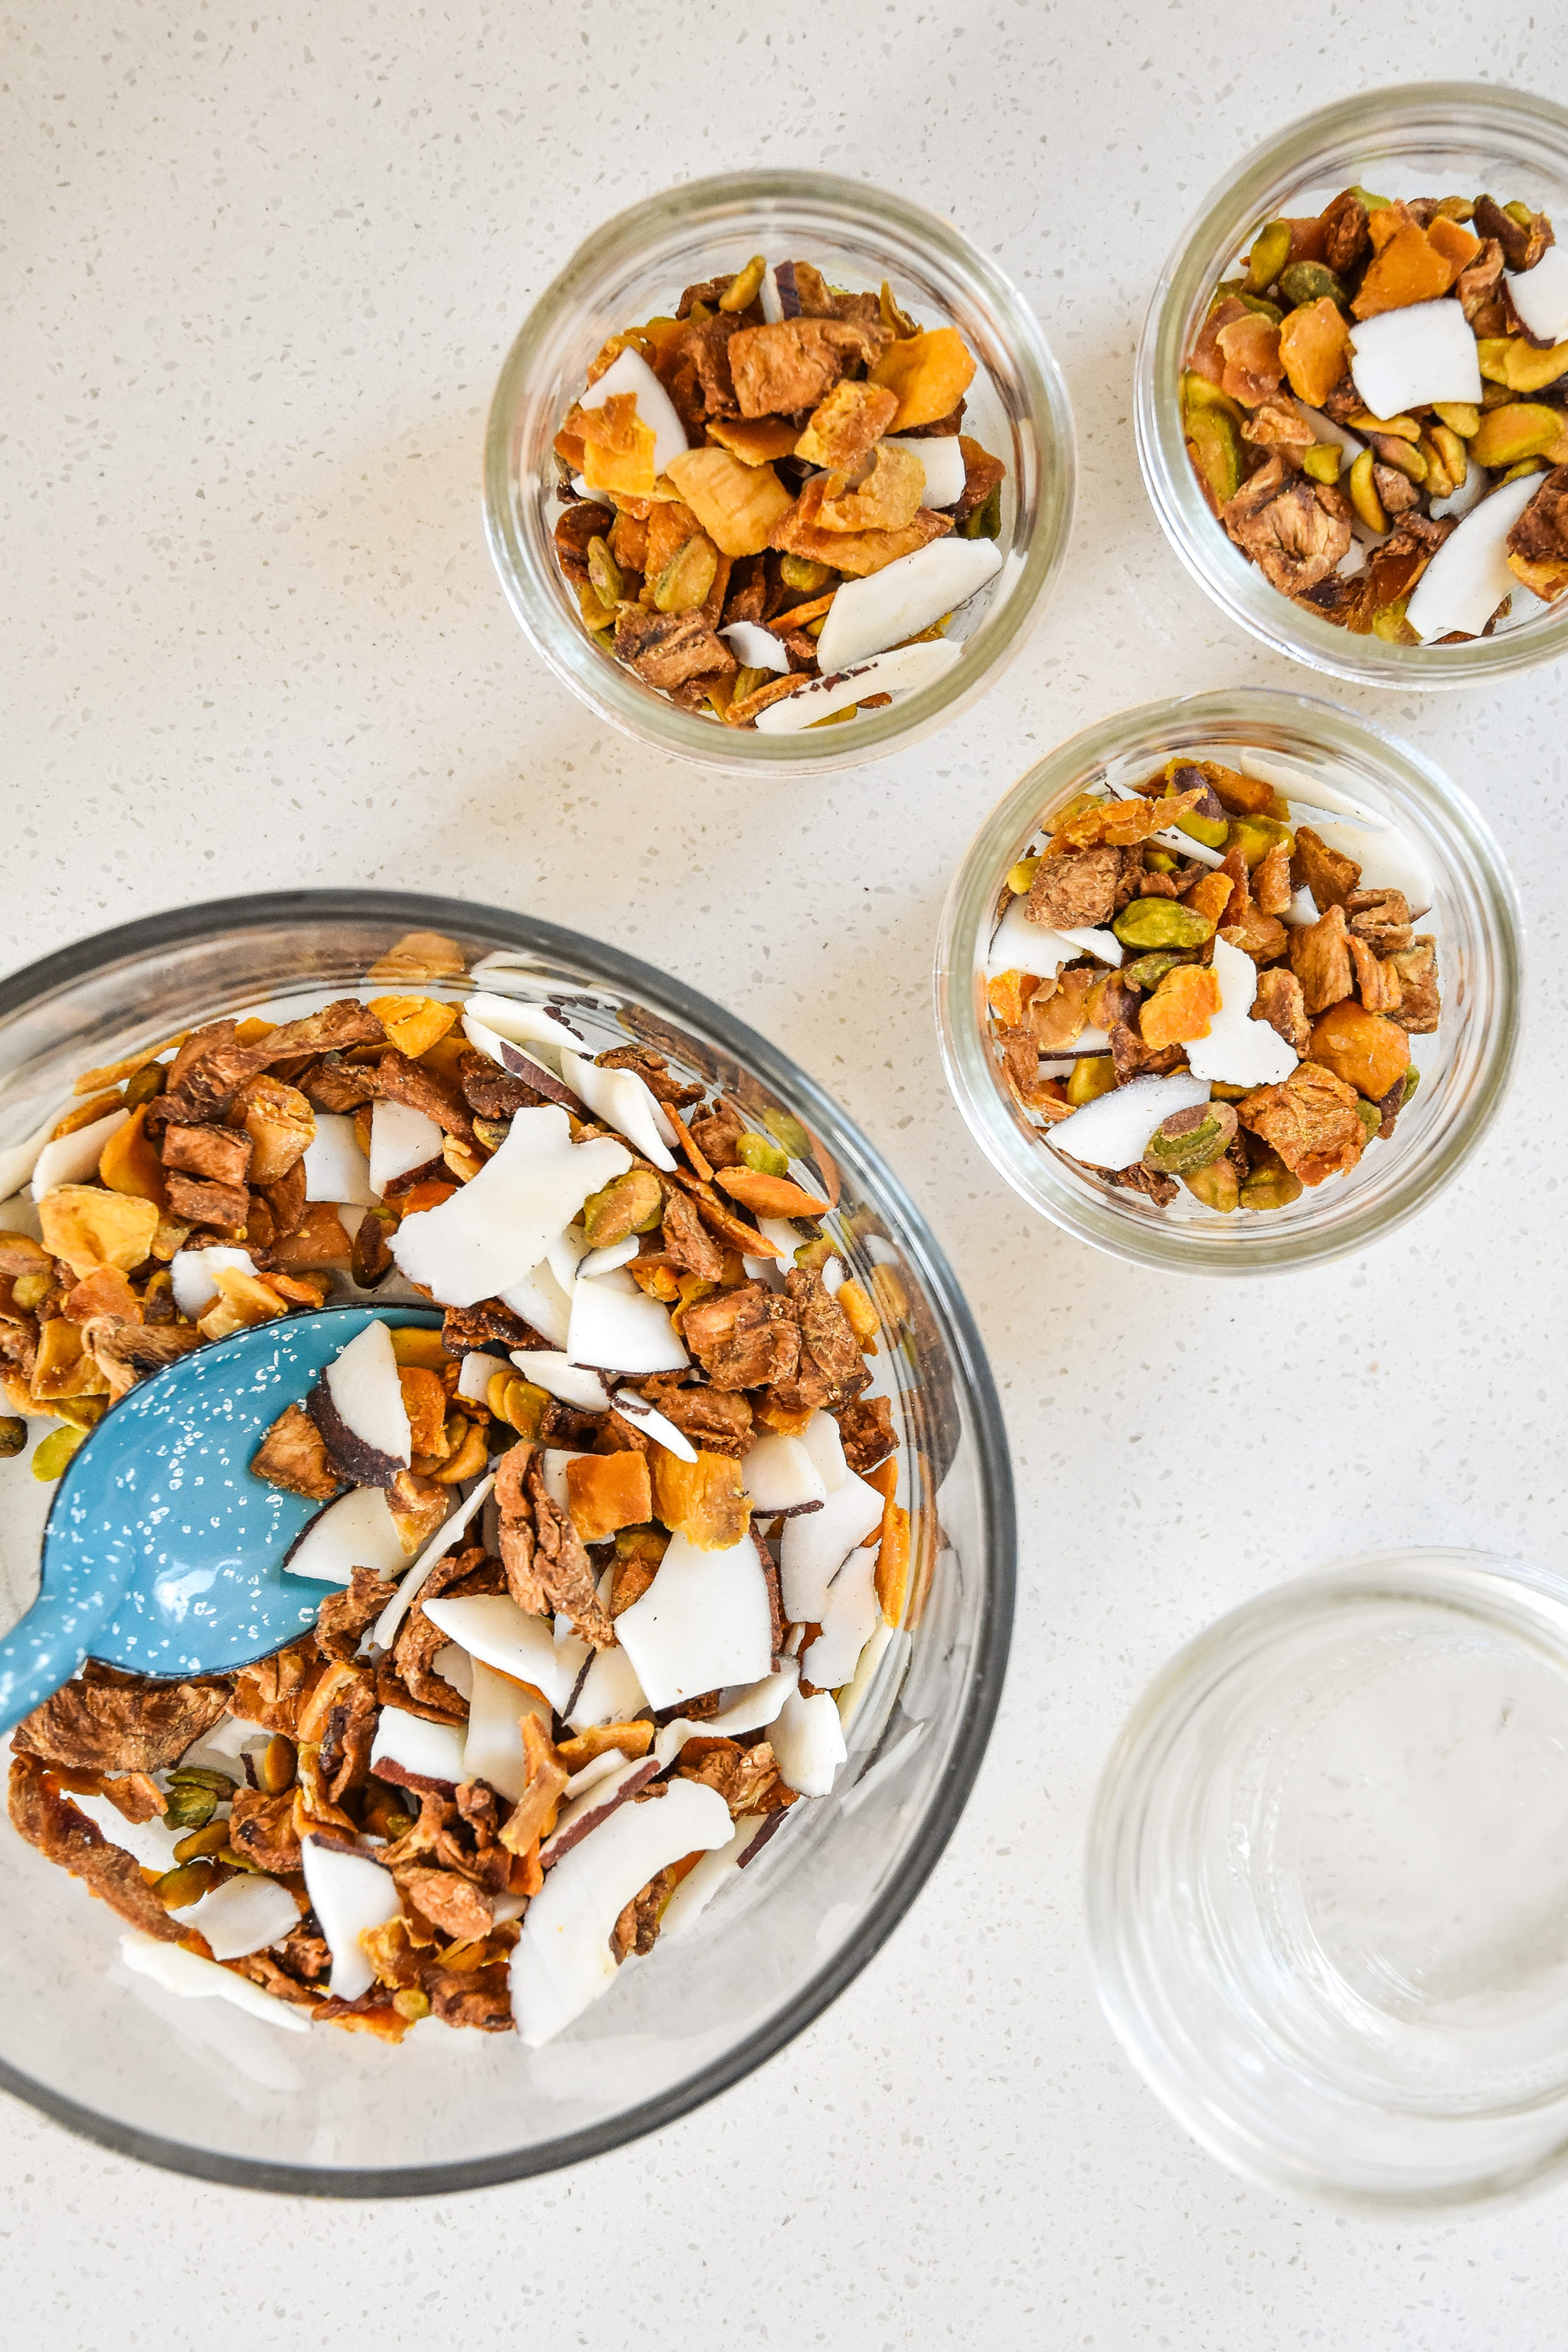 portioning out the tropical dried fruit trail mix